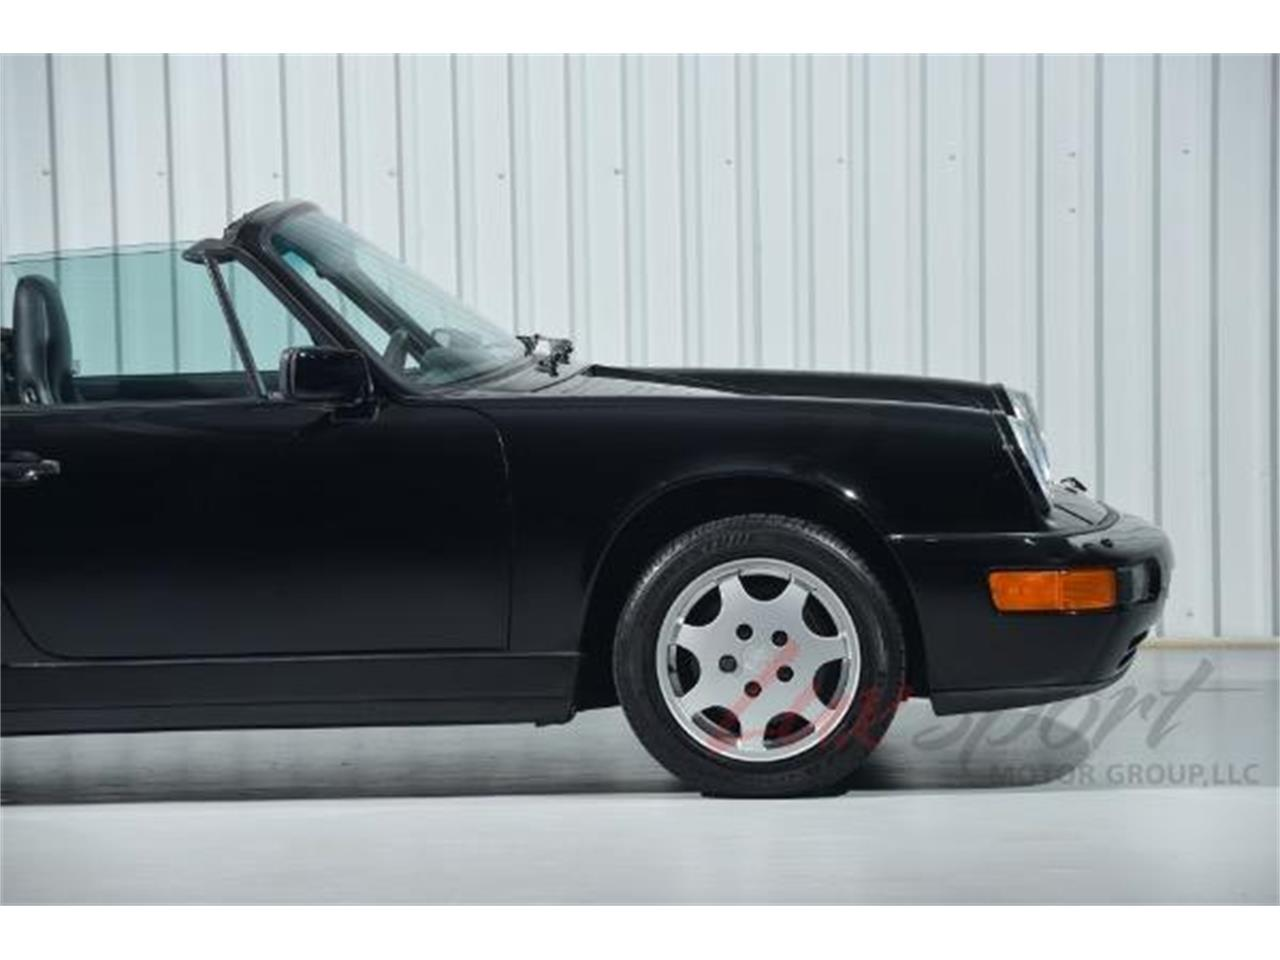 Large Picture of 1990 Porsche 964 Carrera 4 Cabriolet located in New York - $39,995.00 - MGT0